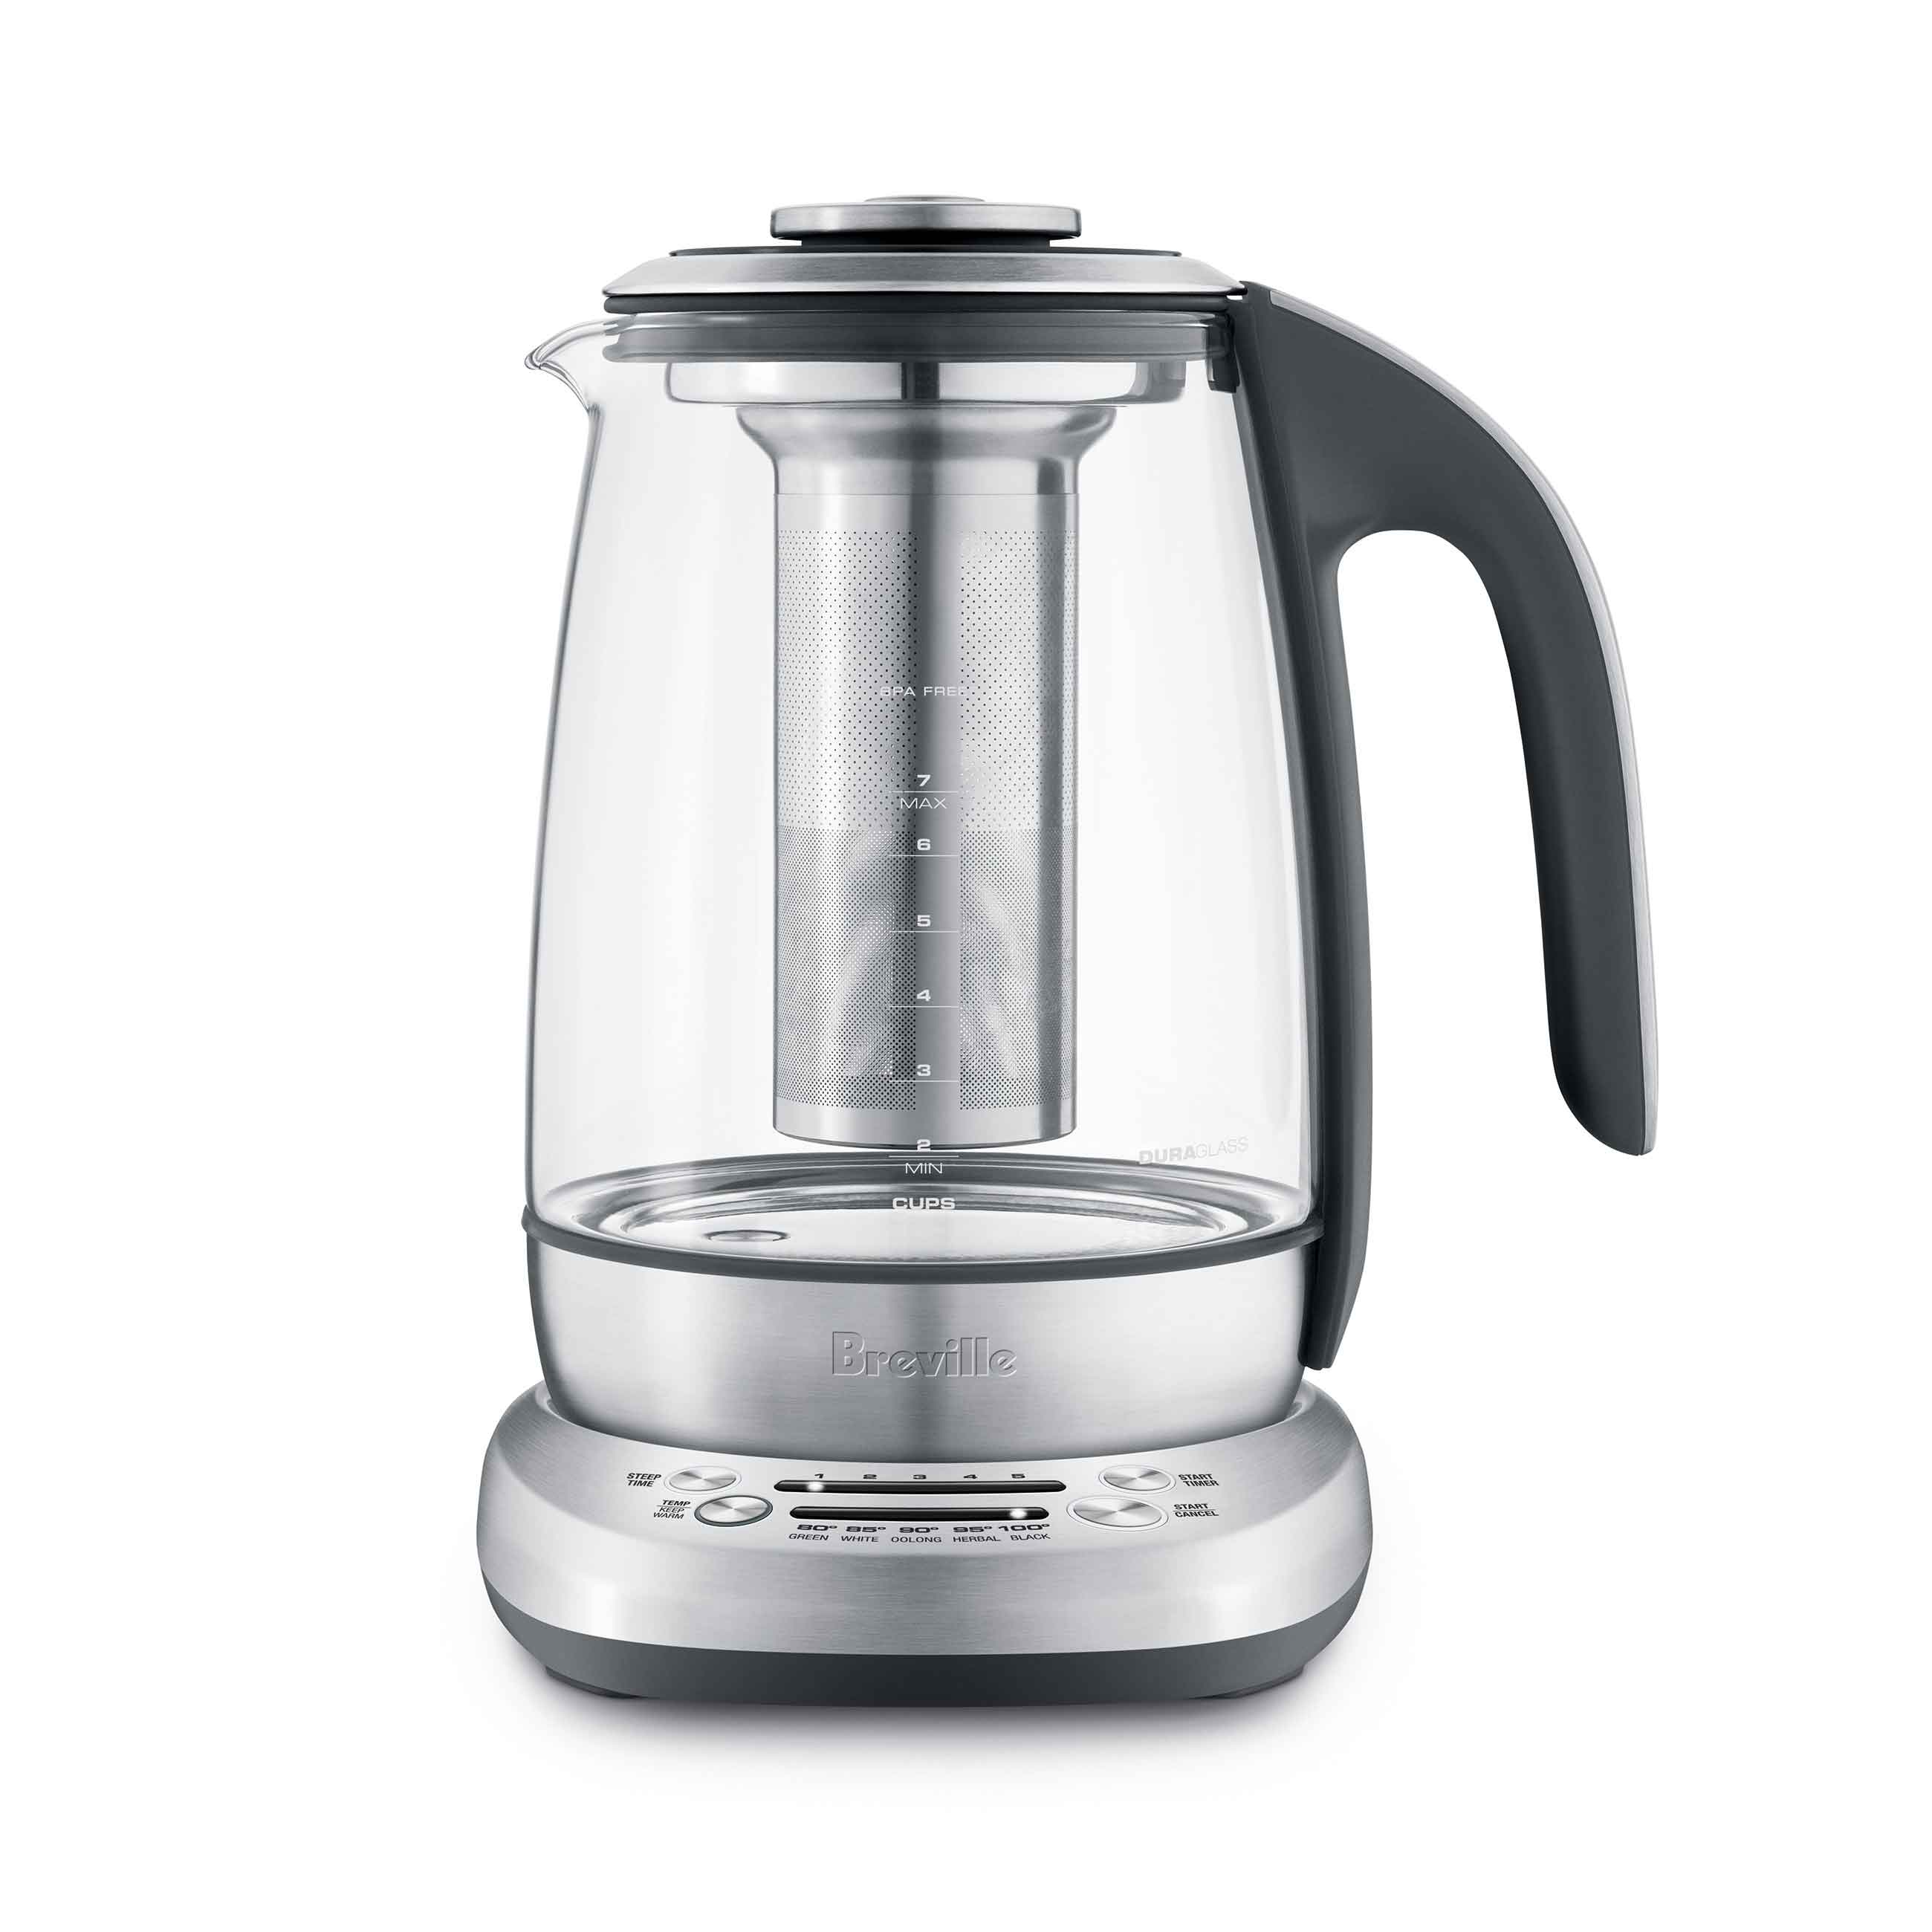 the Breville Smart Tea Infuser™ Tea In Brushed Stainless Steel with glass kettle hot water boiler